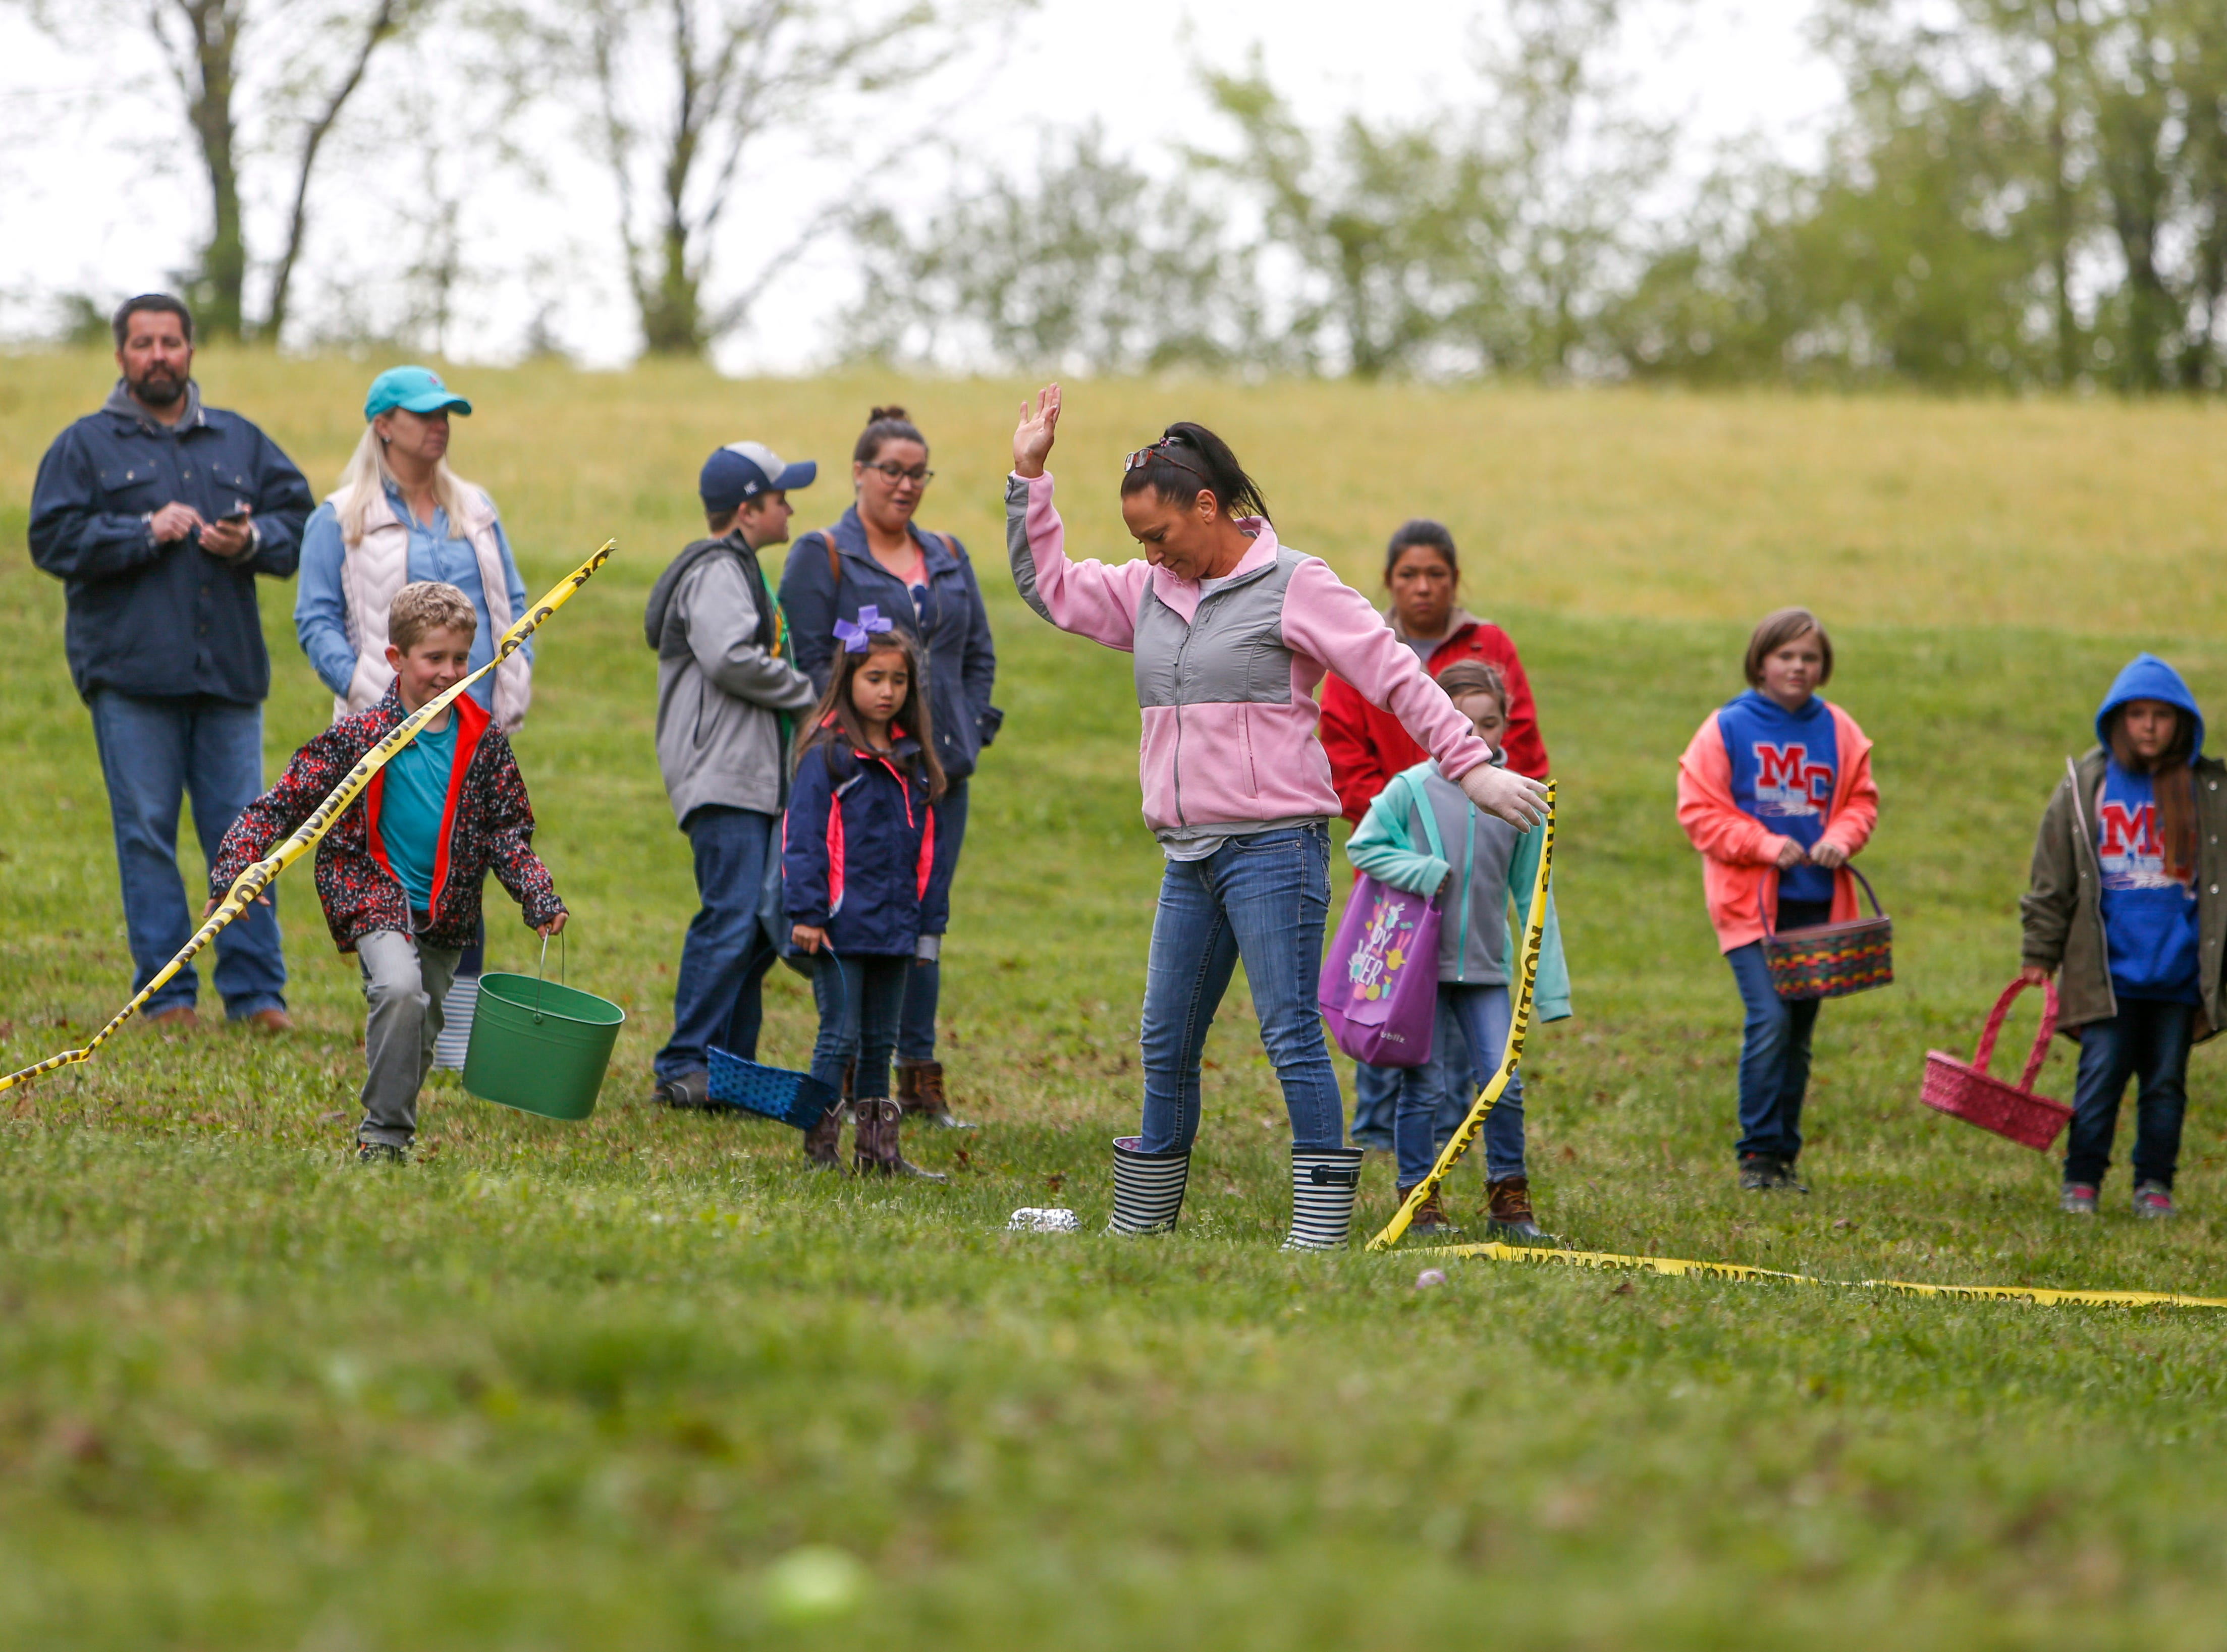 Linda Ebel snaps the barrier tape and lets egg hunters loose at the annual Easter egg hunts at Historic Collinsville in Clarksville, Tenn., on Saturday, April 20, 2019.